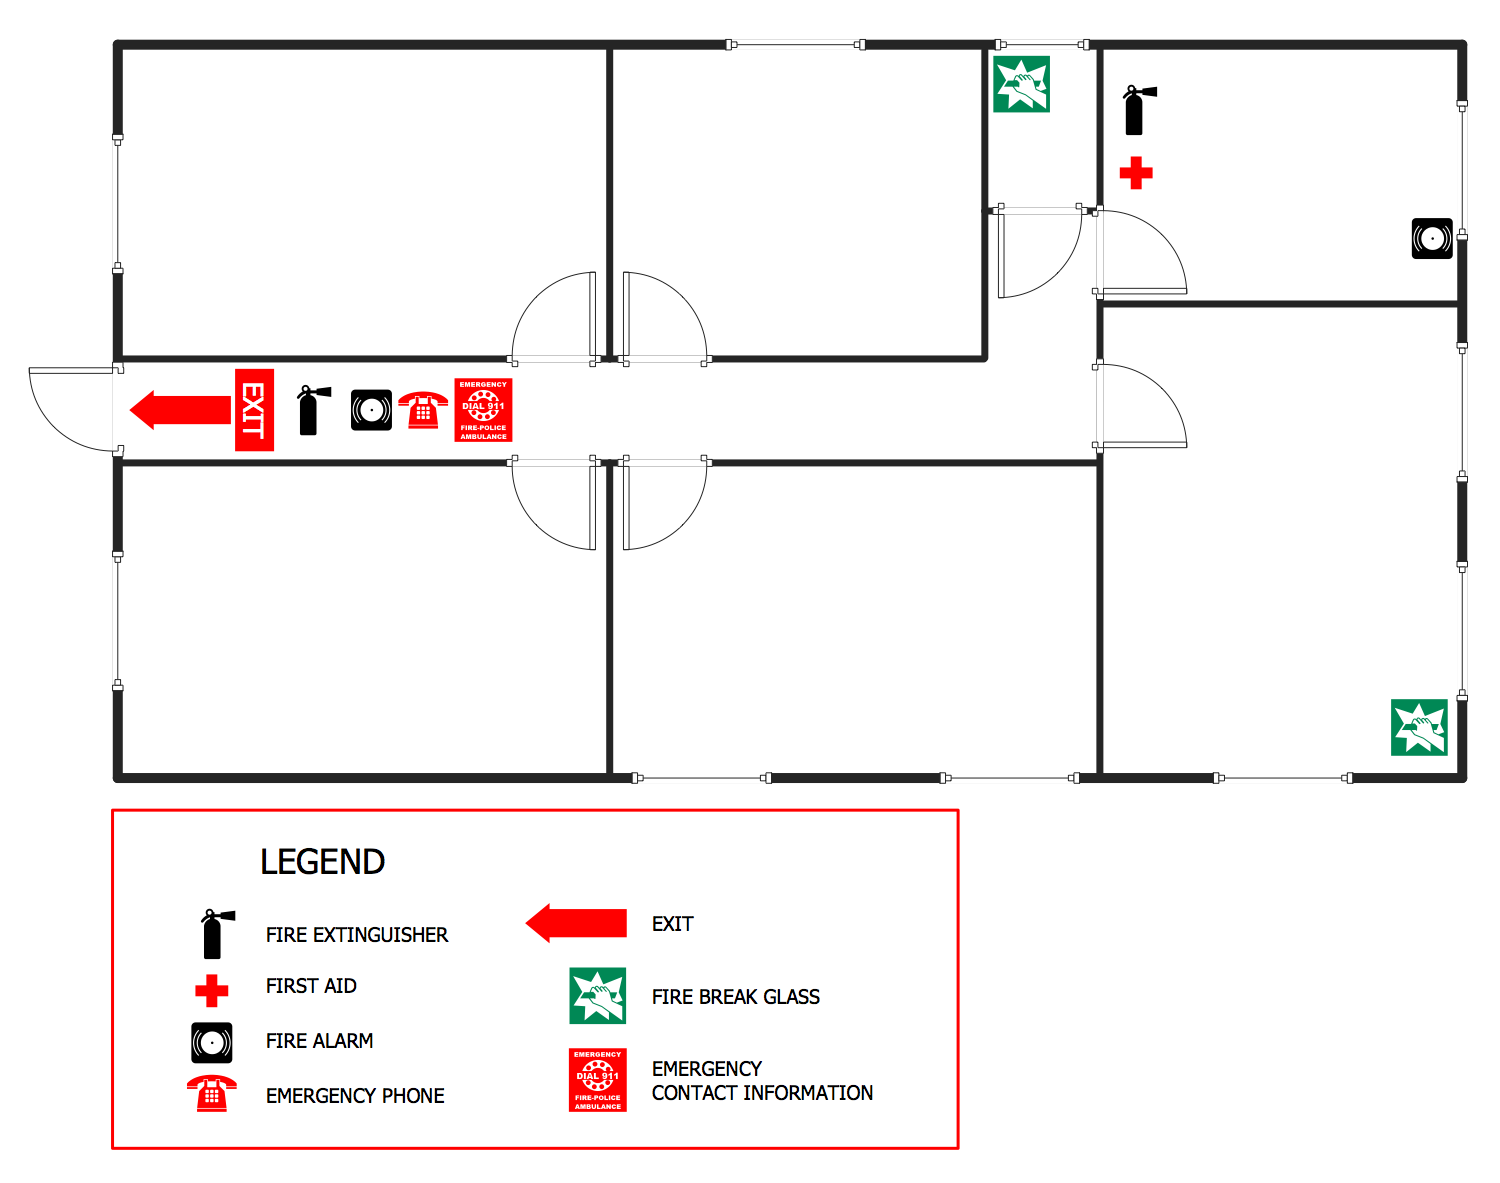 building wiring diagram with symbols fire and emergency plans solution | conceptdraw.com #14